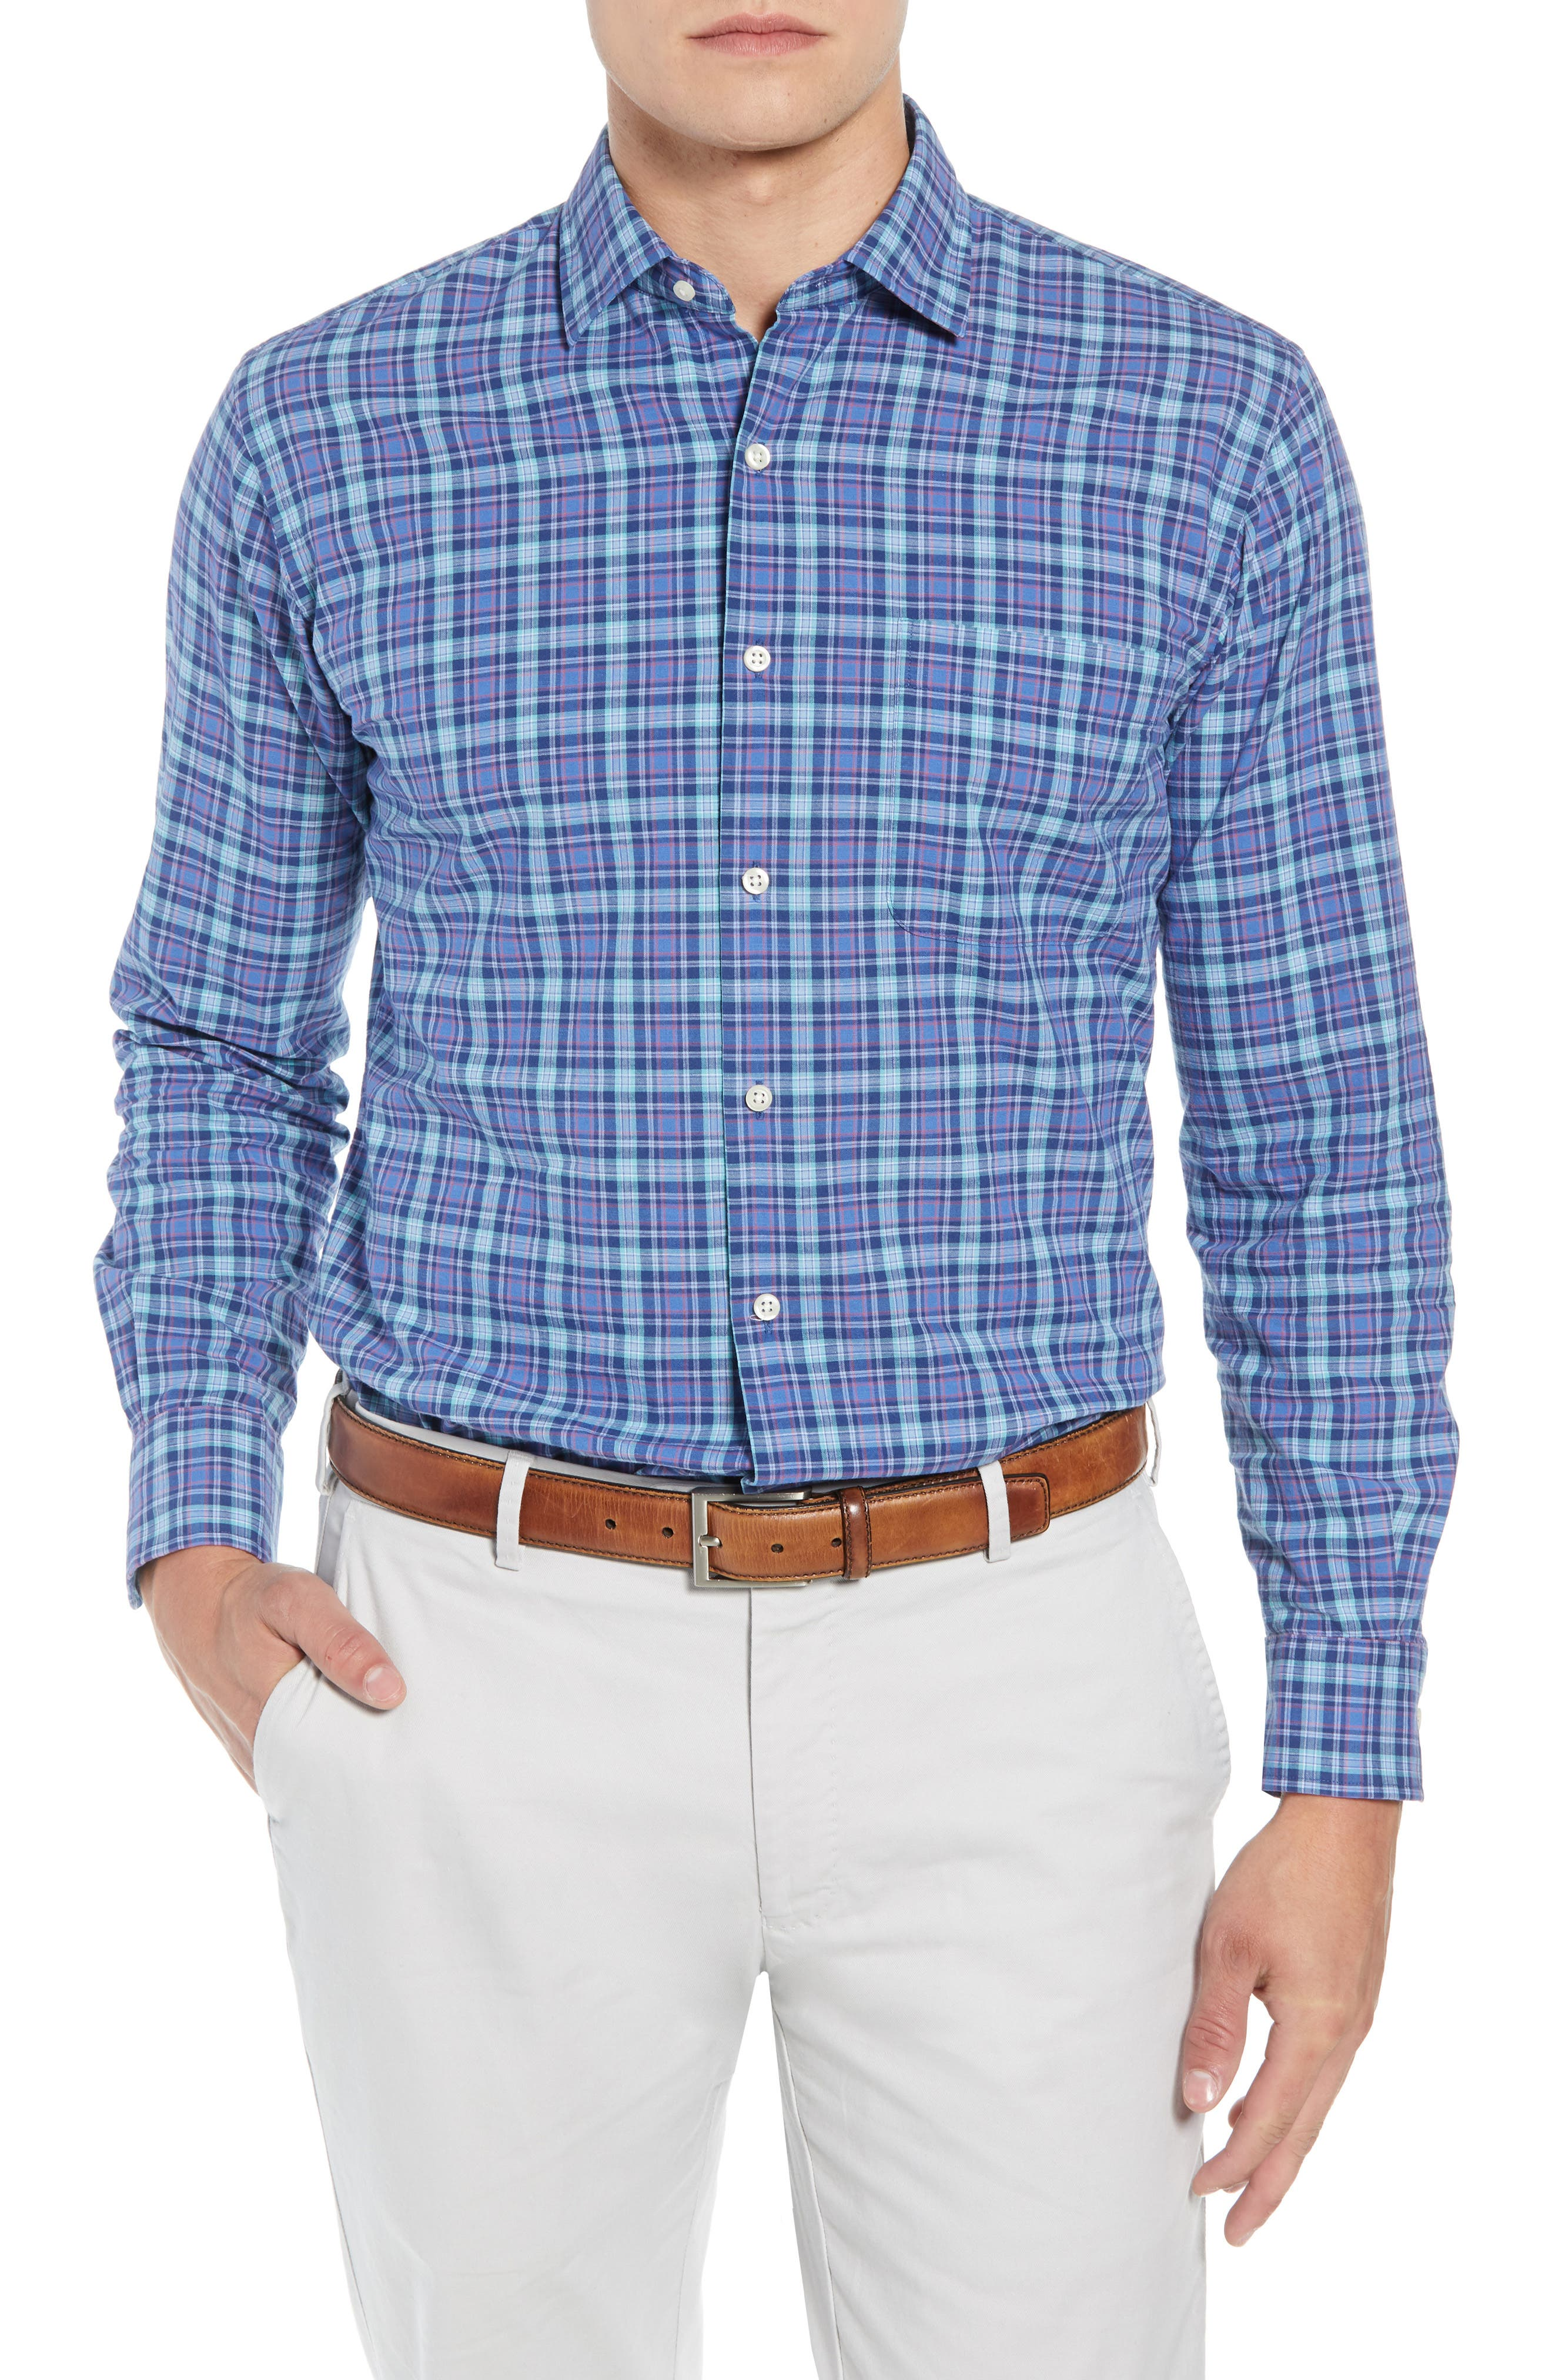 Fisherman's Wharf Regular Fit Plaid Sport Shirt,                         Main,                         color, BLUE